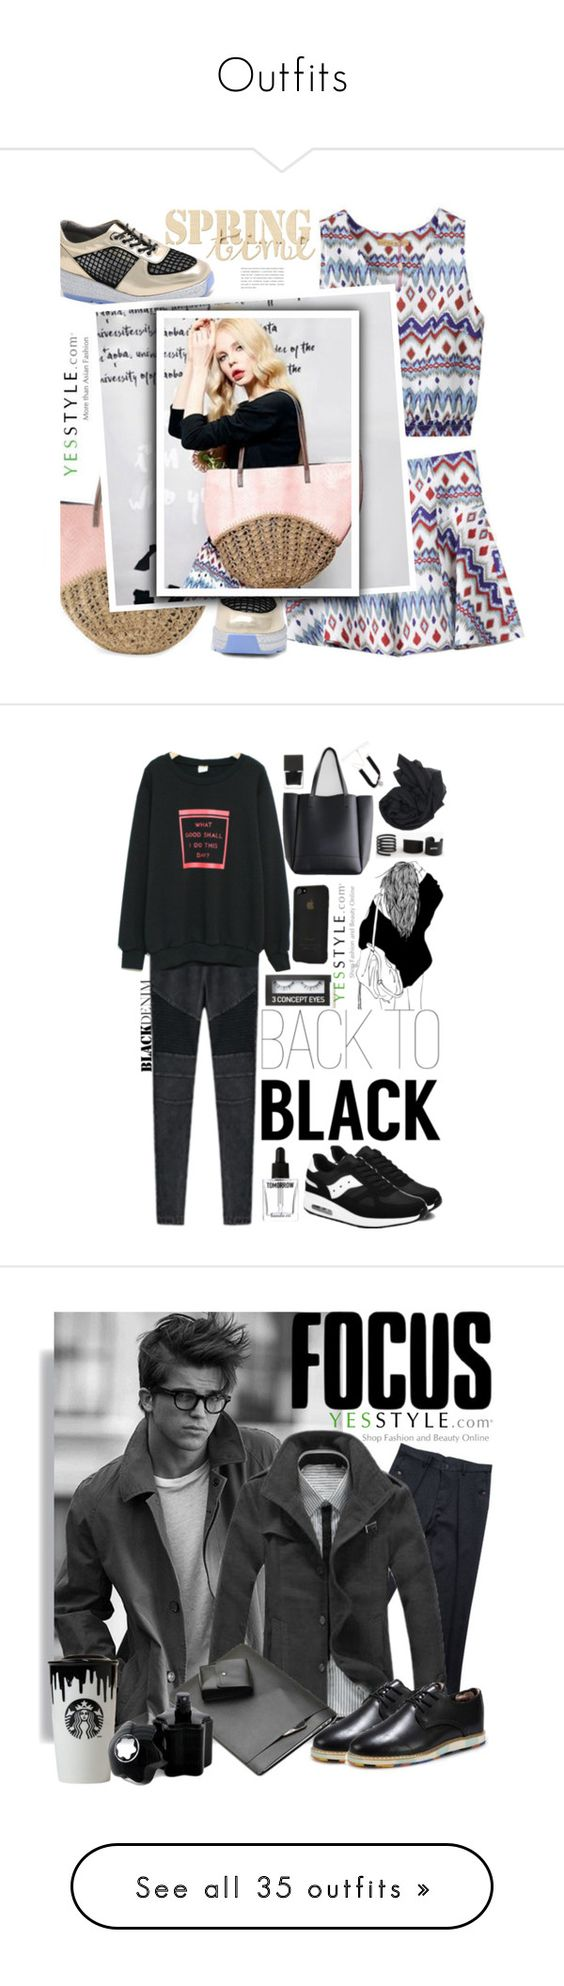 """""""Outfits"""" by tumblrcloset ❤ liked on Polyvore featuring Elf Sack, Spring, Pink, springfashion, yesstyle, PEPER, Gerbulan, YOOM, Seirios and 3 Concept Eyes"""